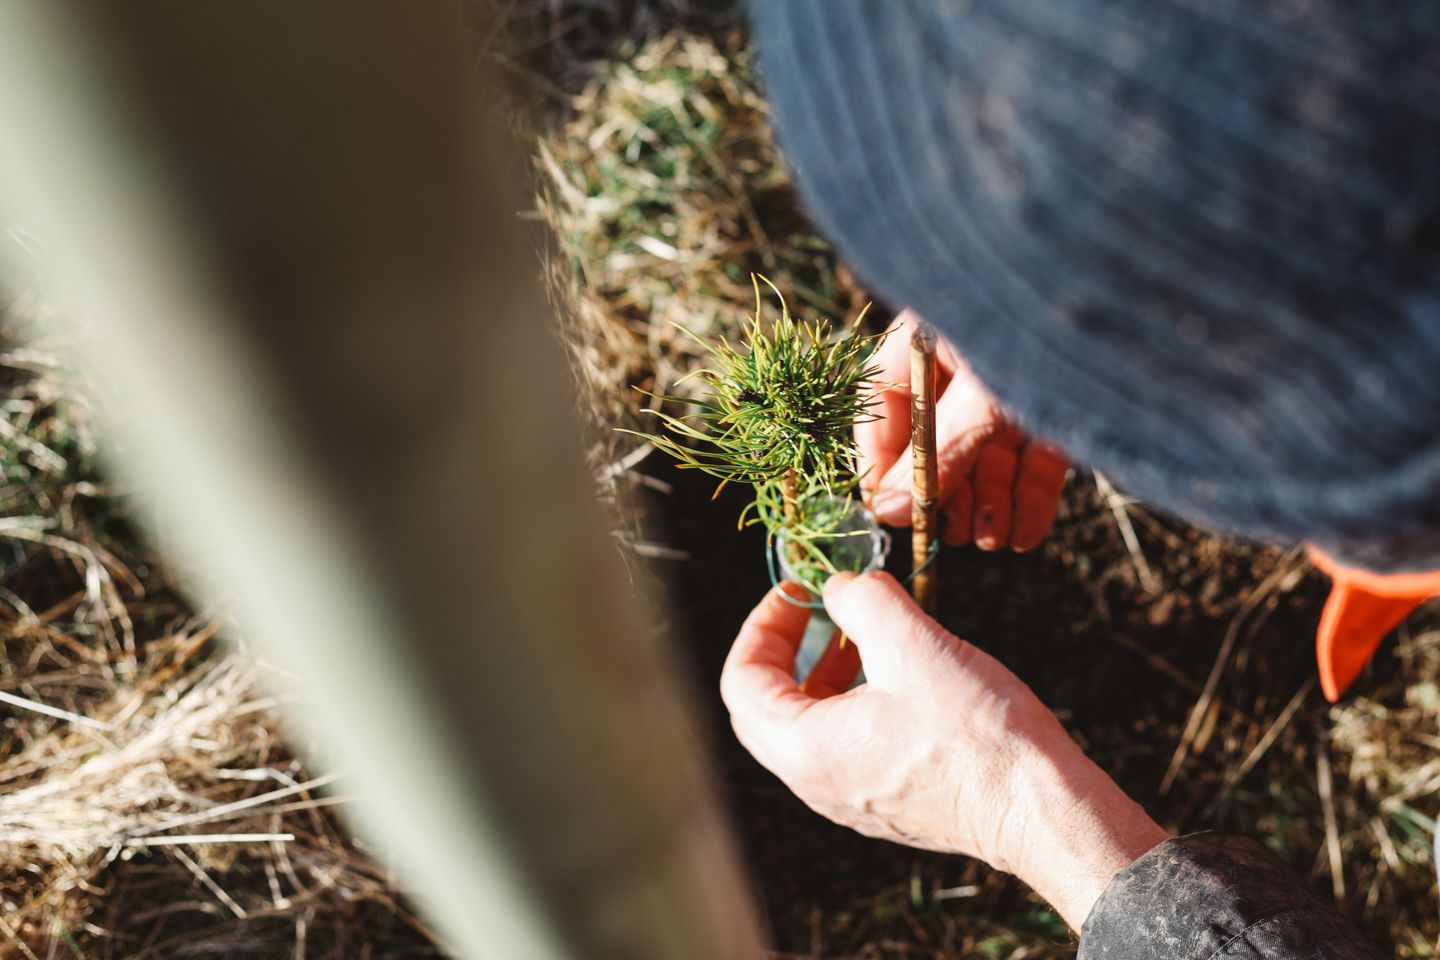 Tree planting Scotland as part of a sustainable business